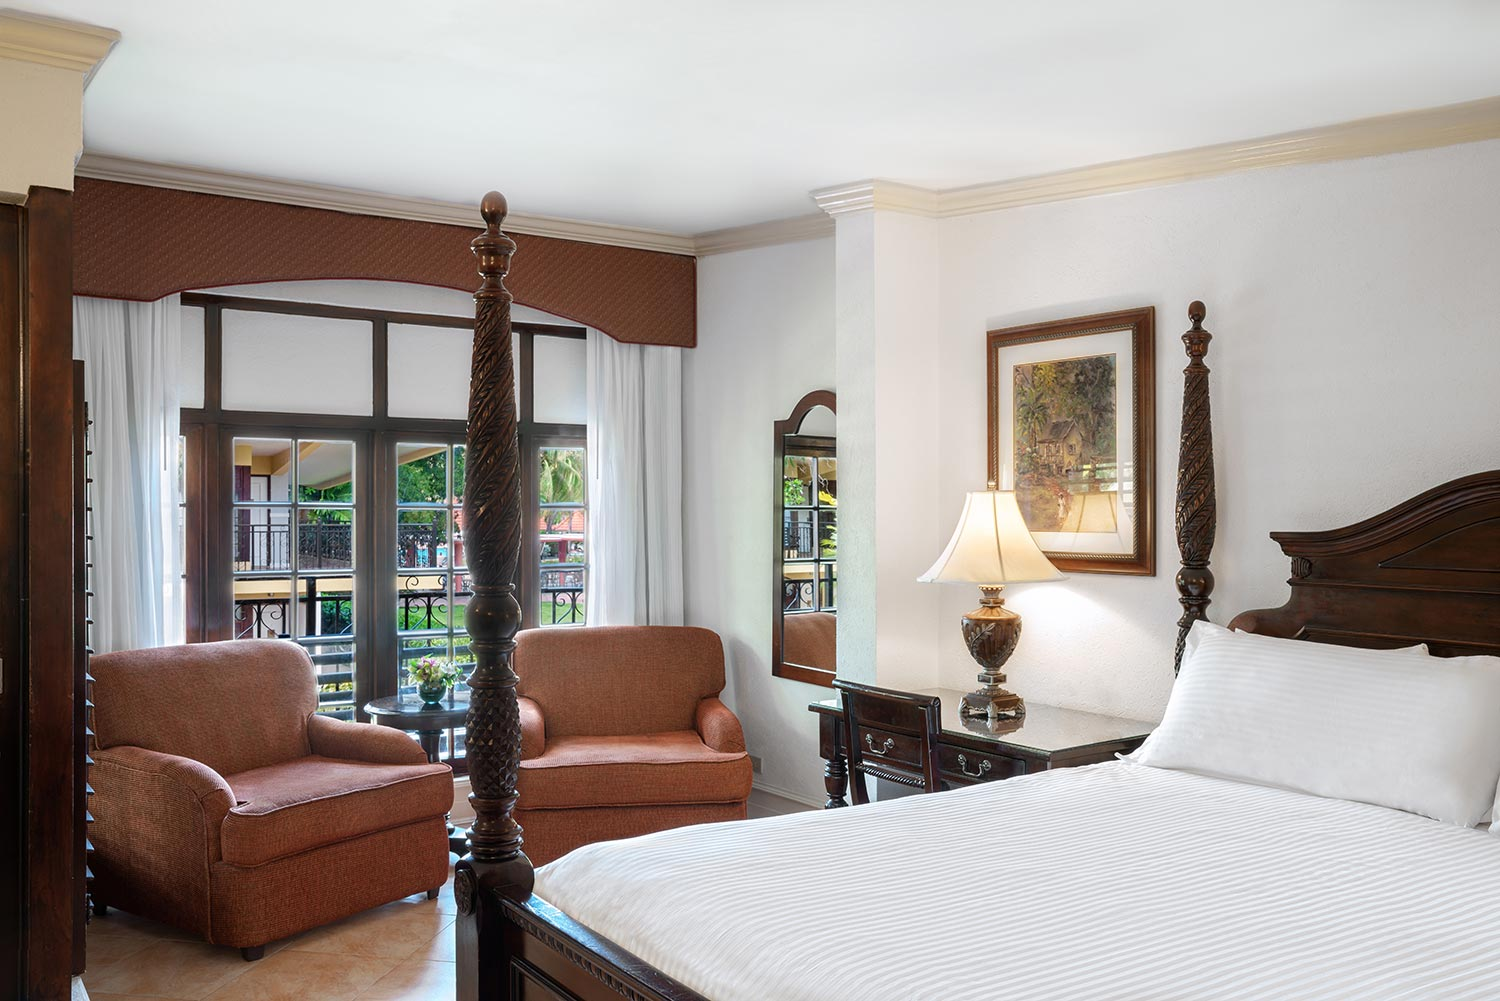 Emerald Lanai Guest Rooms  Starting at $223.00/per night, taxes and fees included